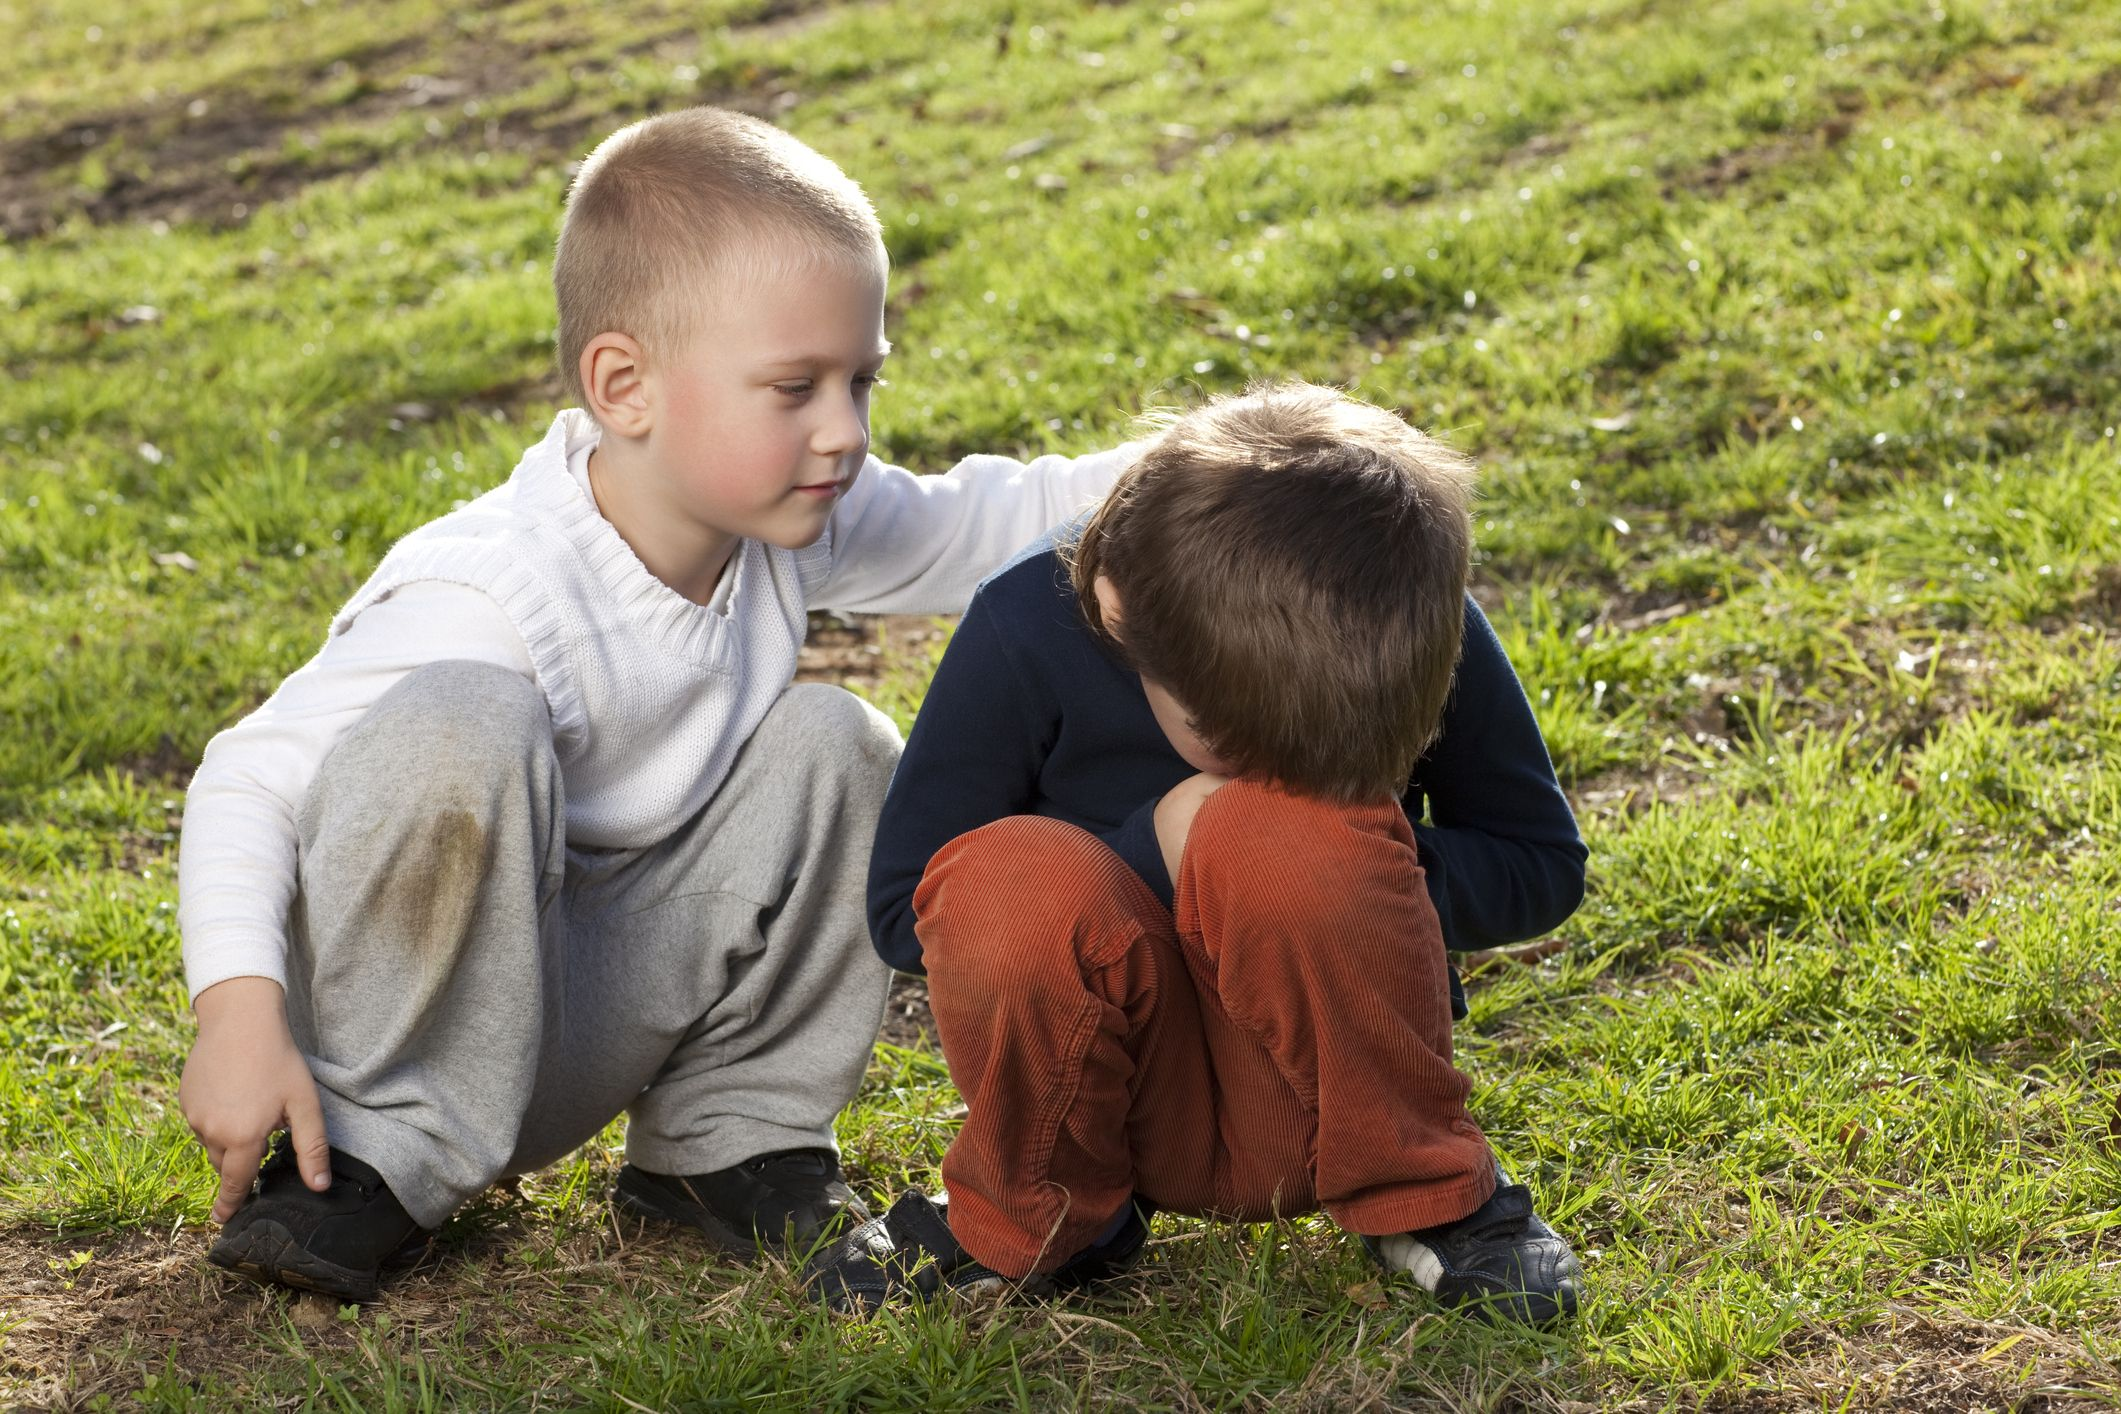 A young boy expressing empathy for his friend.